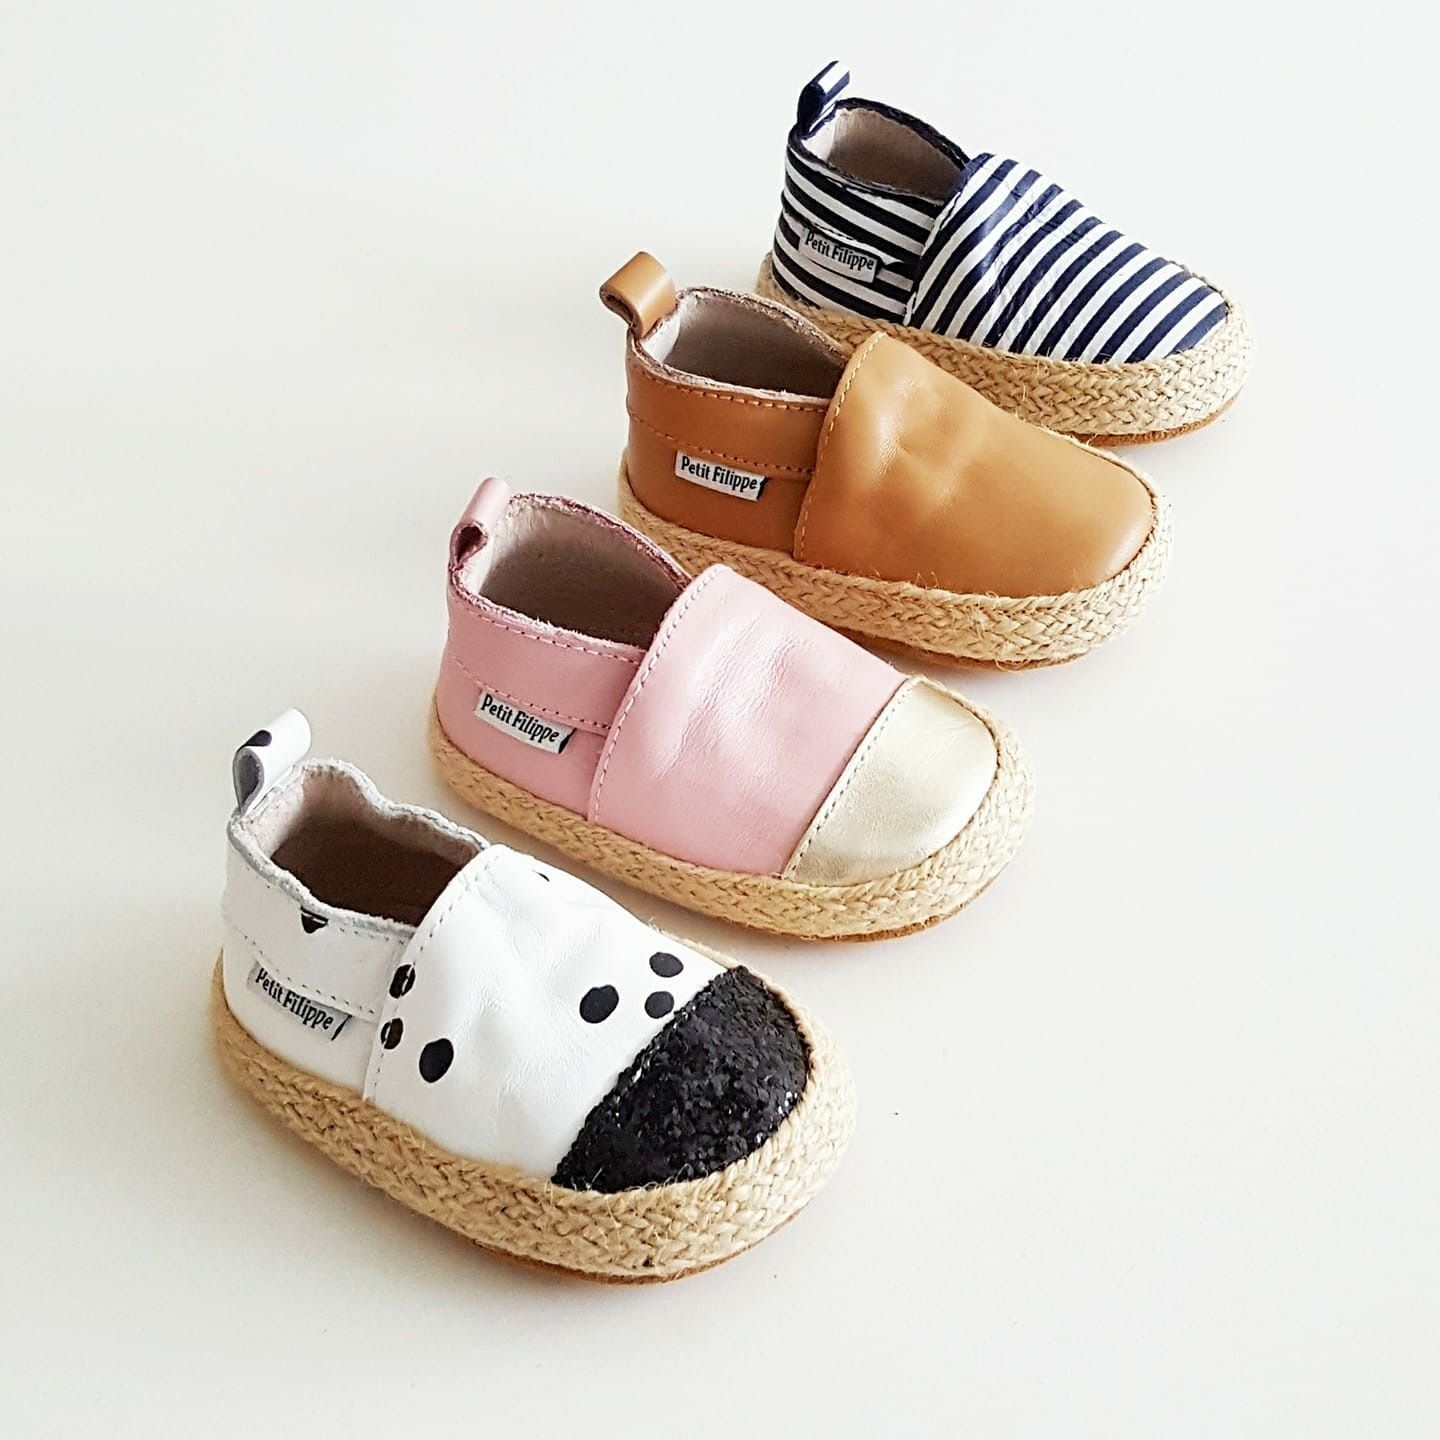 e56f6f54f4448 shoes #babyclothes #cutenessoverload #baby   Everything Baby   Baby ...